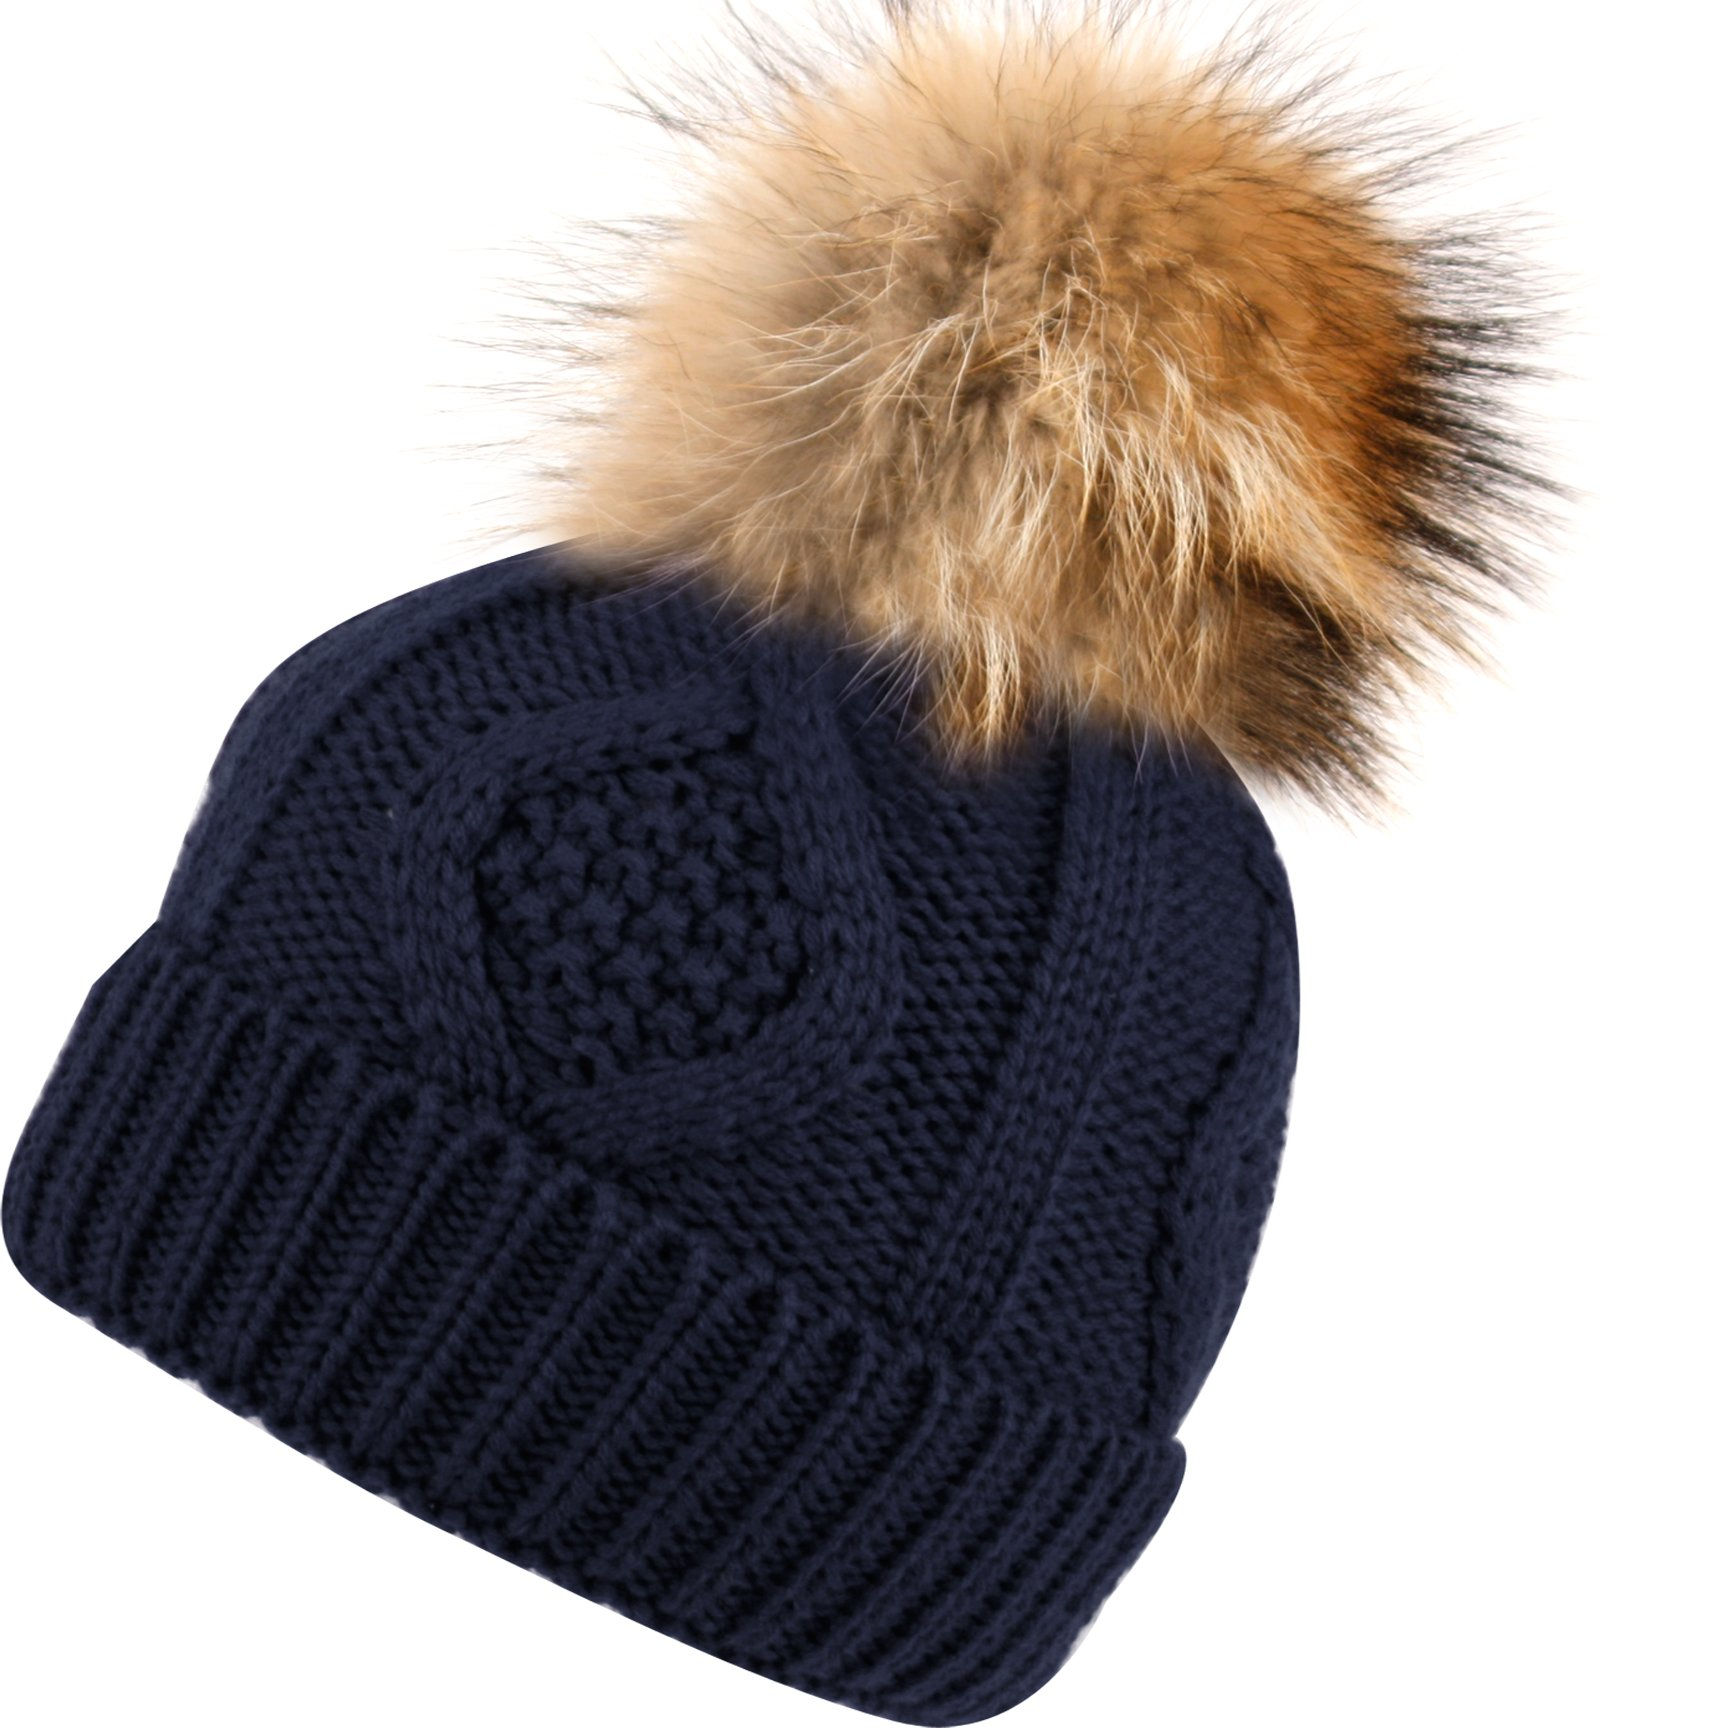 BN2355 Solid Cable Knit Real Raccoon Fur Pom Pom Skull Cap Hat Beanie (Navy)